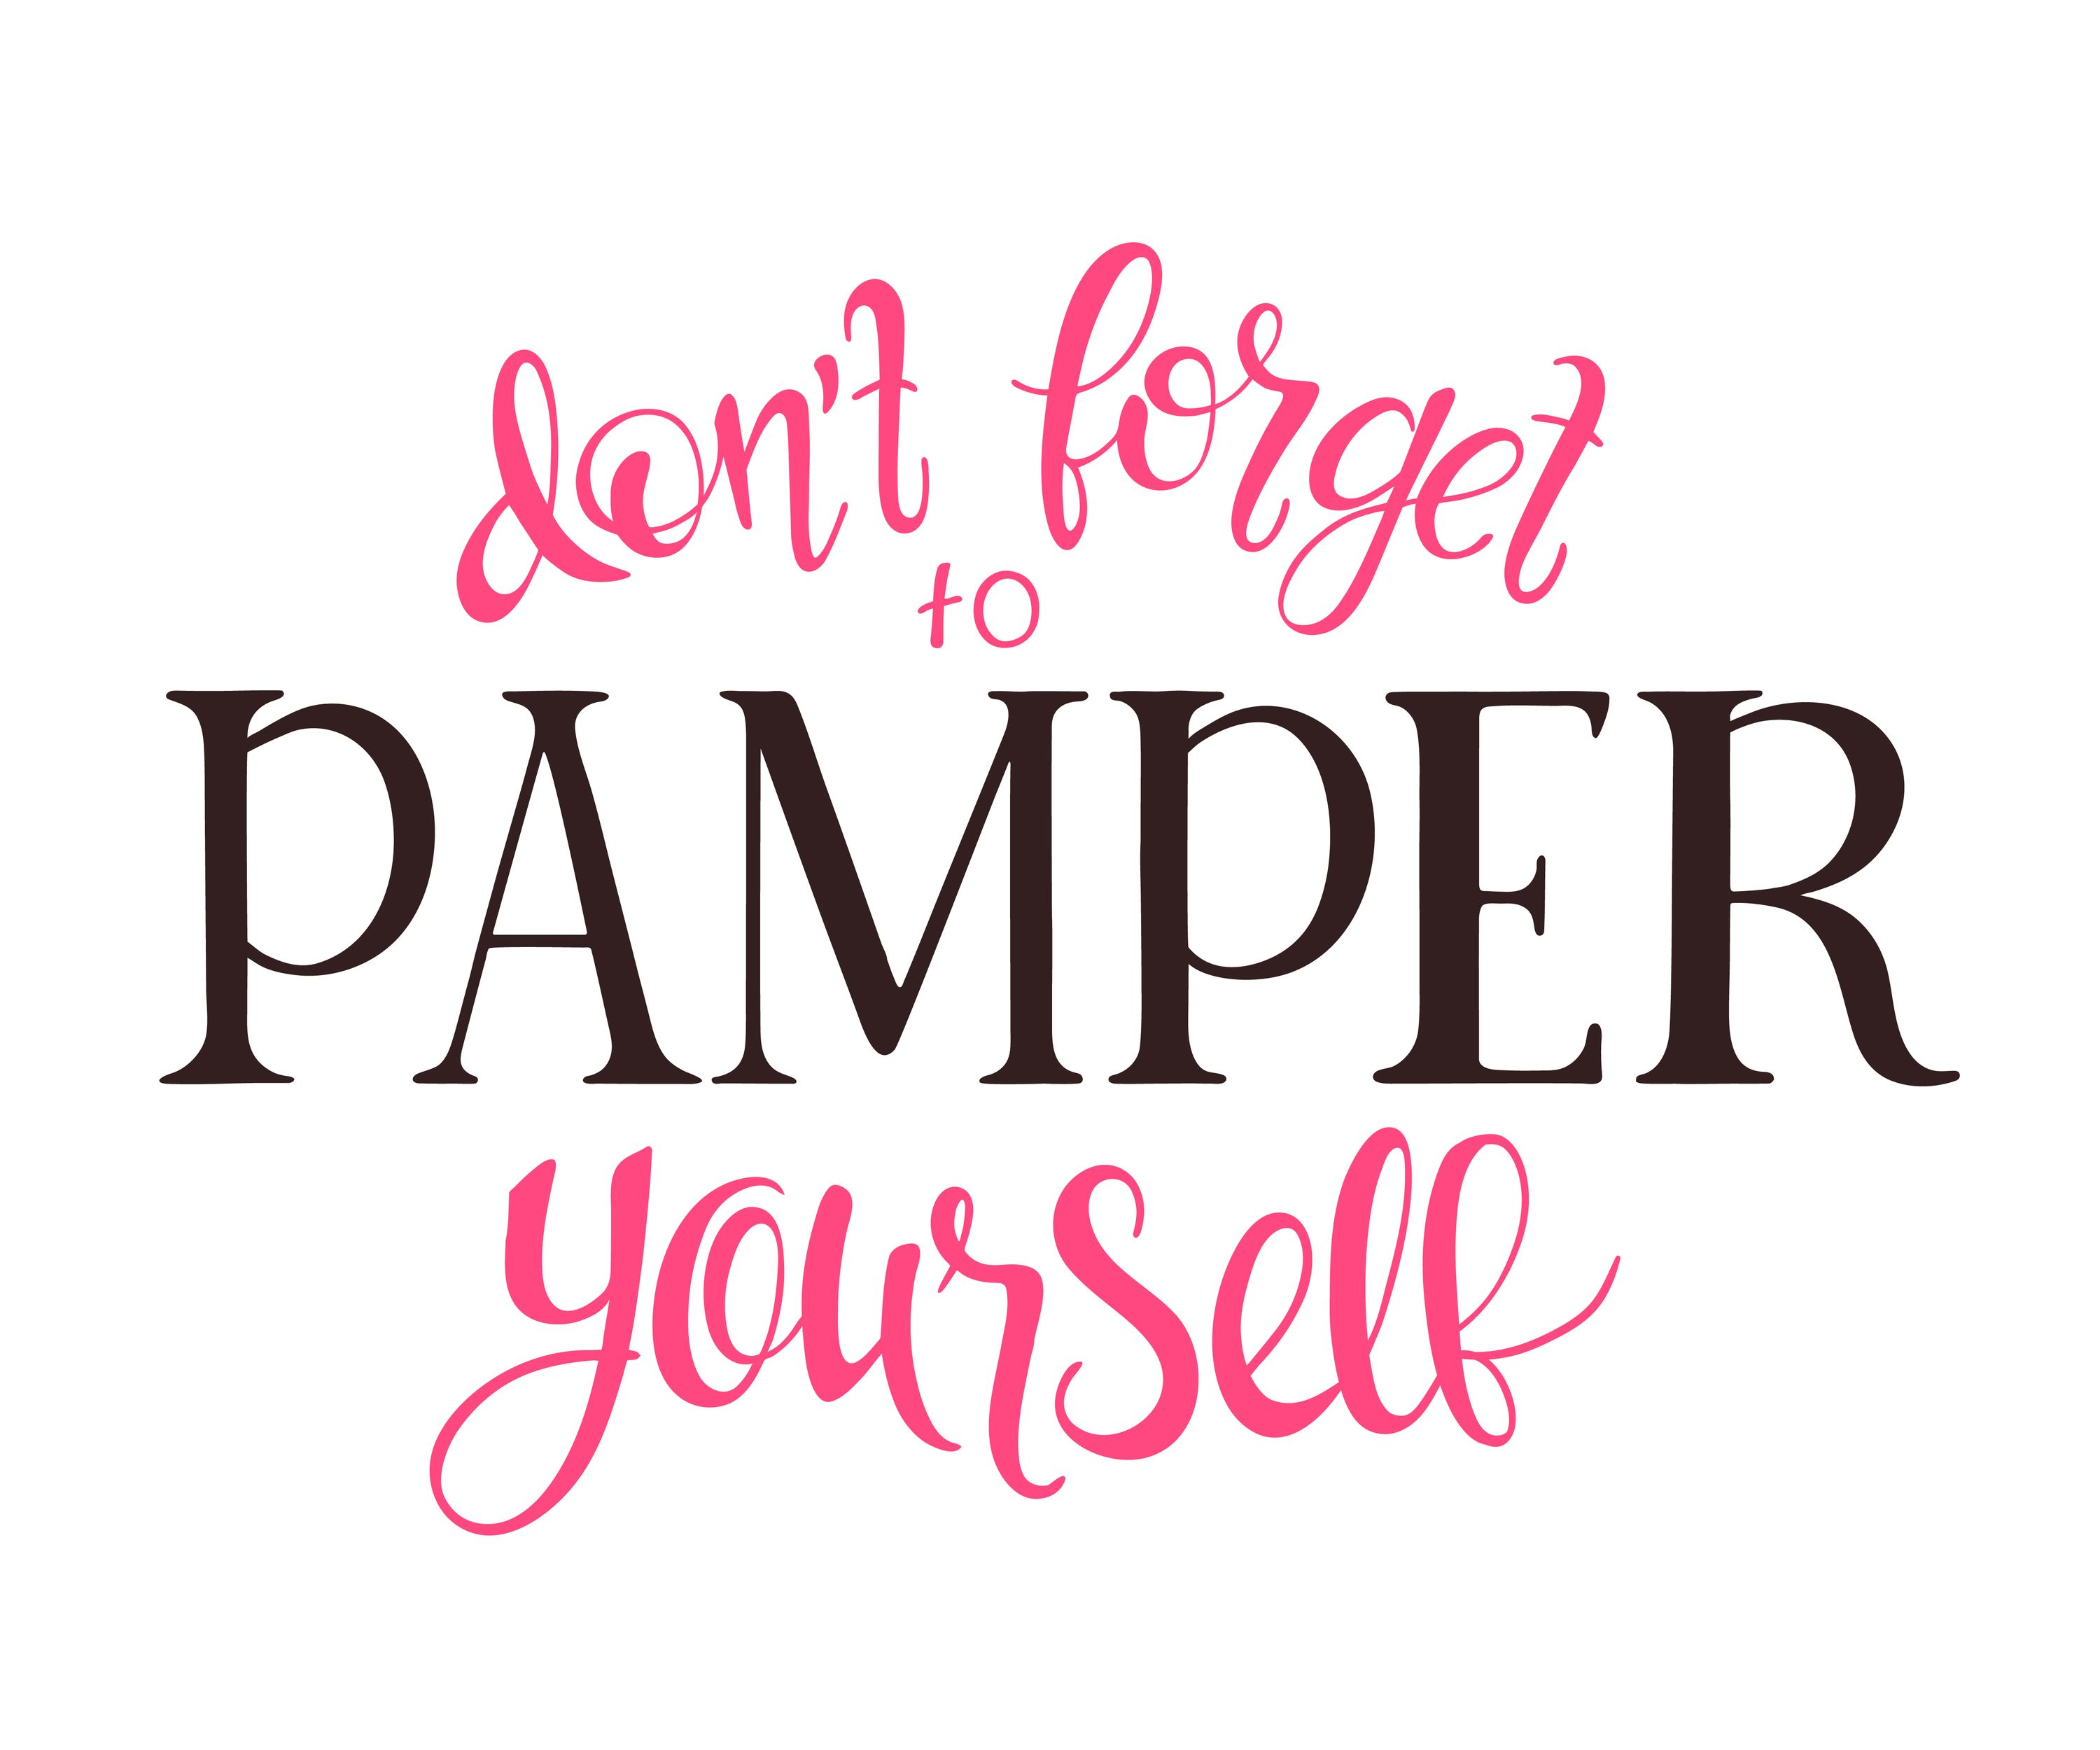 Don't forget to pamper yourself quotes & sayings, spa and health